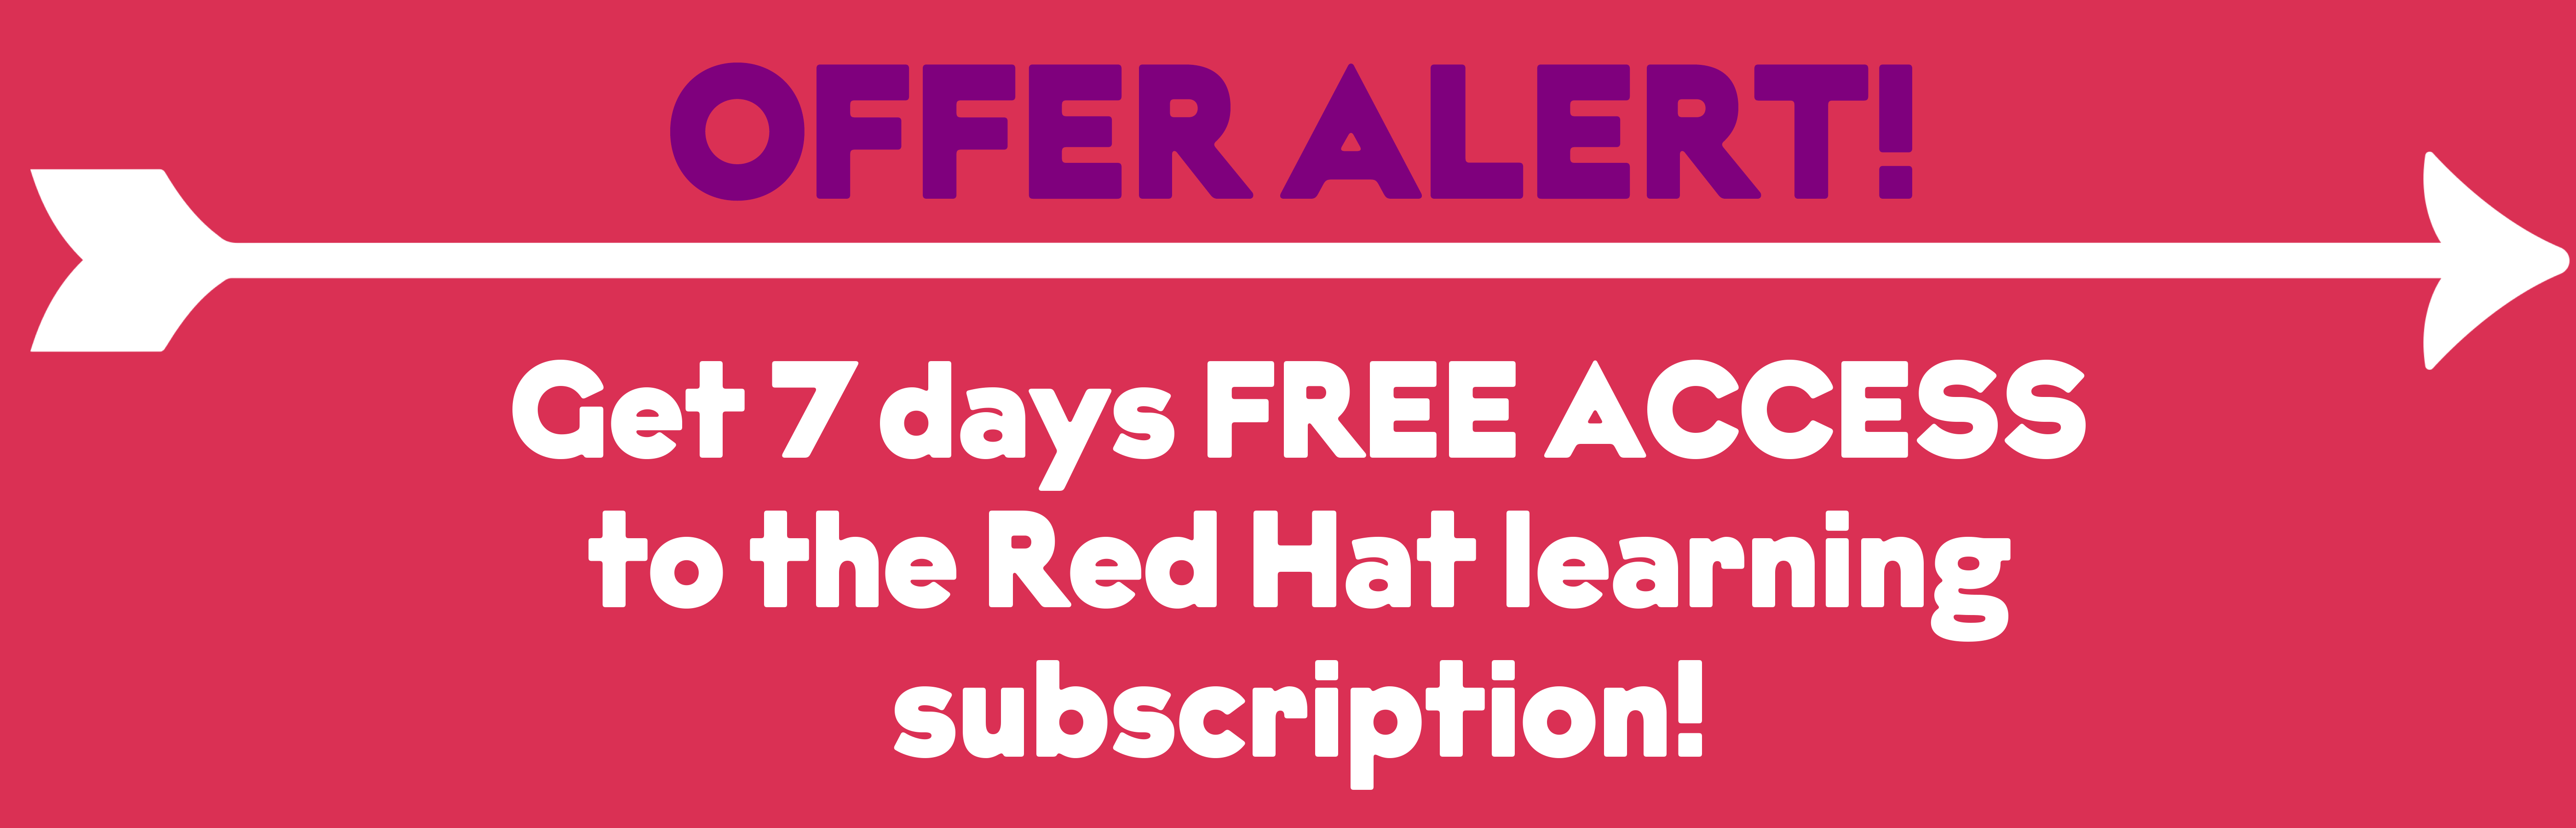 Red Hat Free Trial Offer